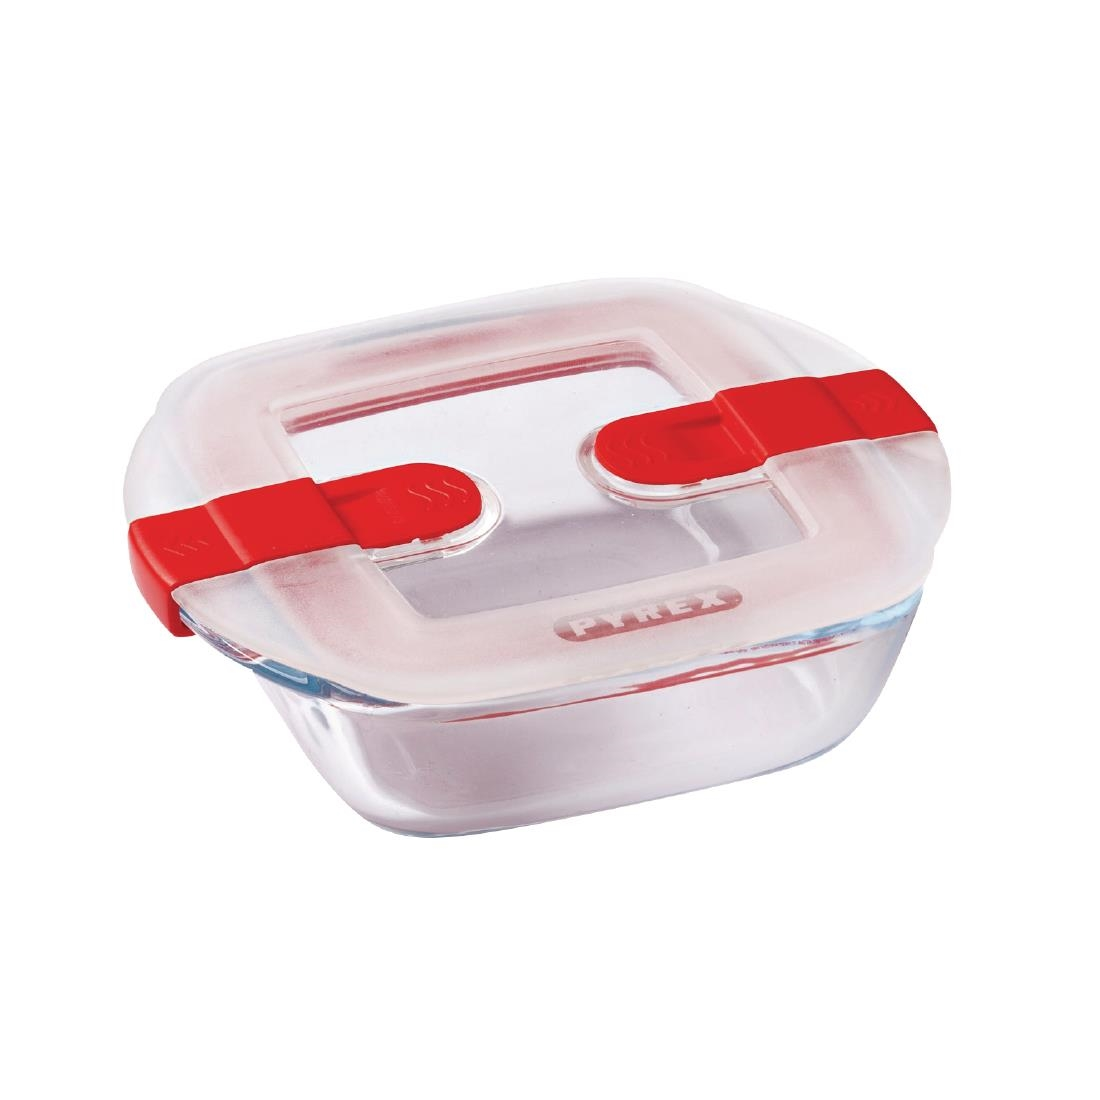 Image of Pyrex Cook and Heat Square Dish with Lid 350ml